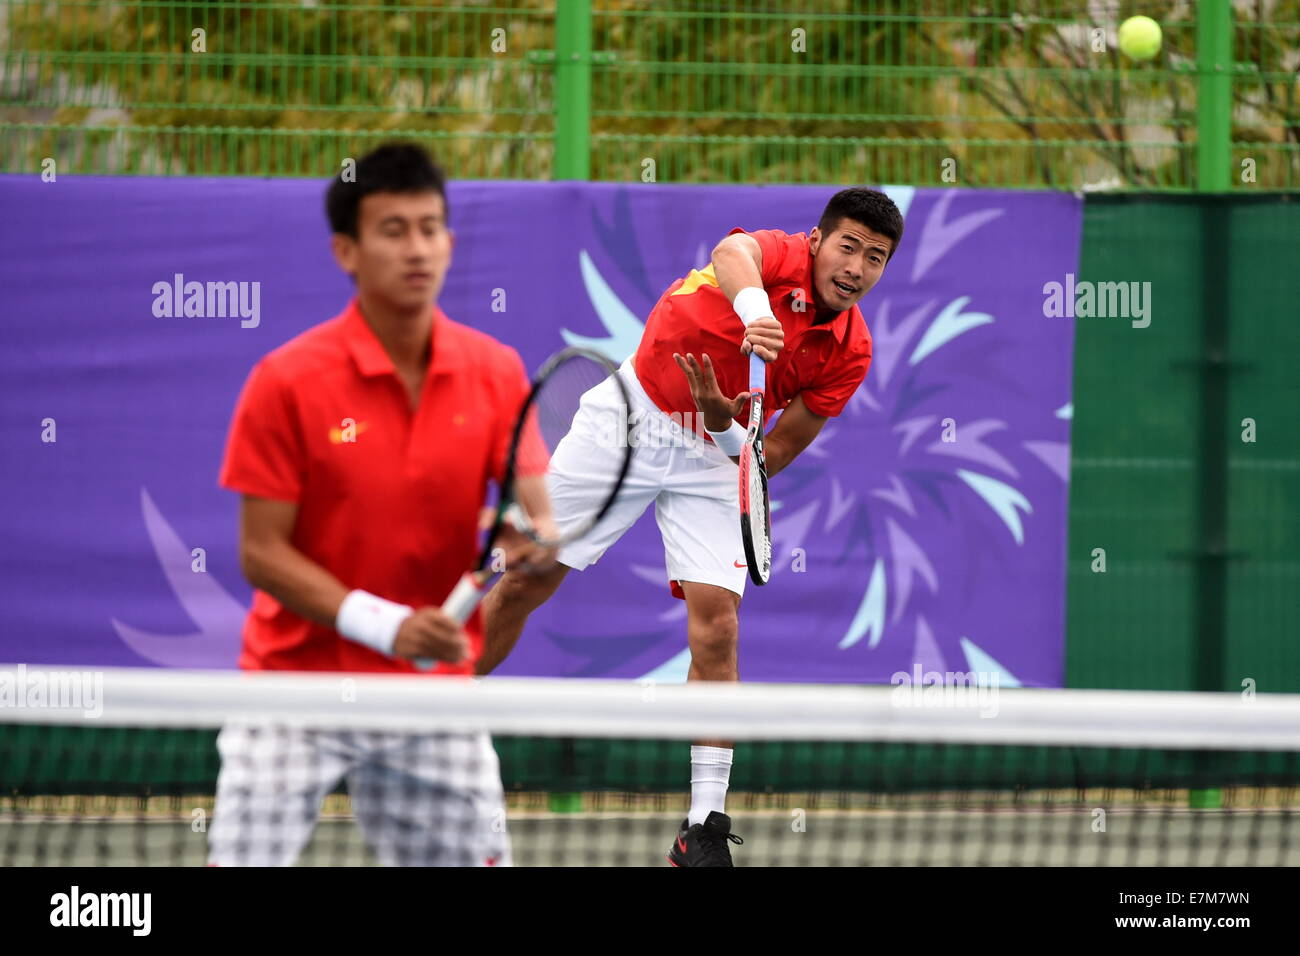 Incheon, South Korea. 21st Sep, 2014. Li Zhe (back) of China serves the ball during the men's tennis team second - Stock Image